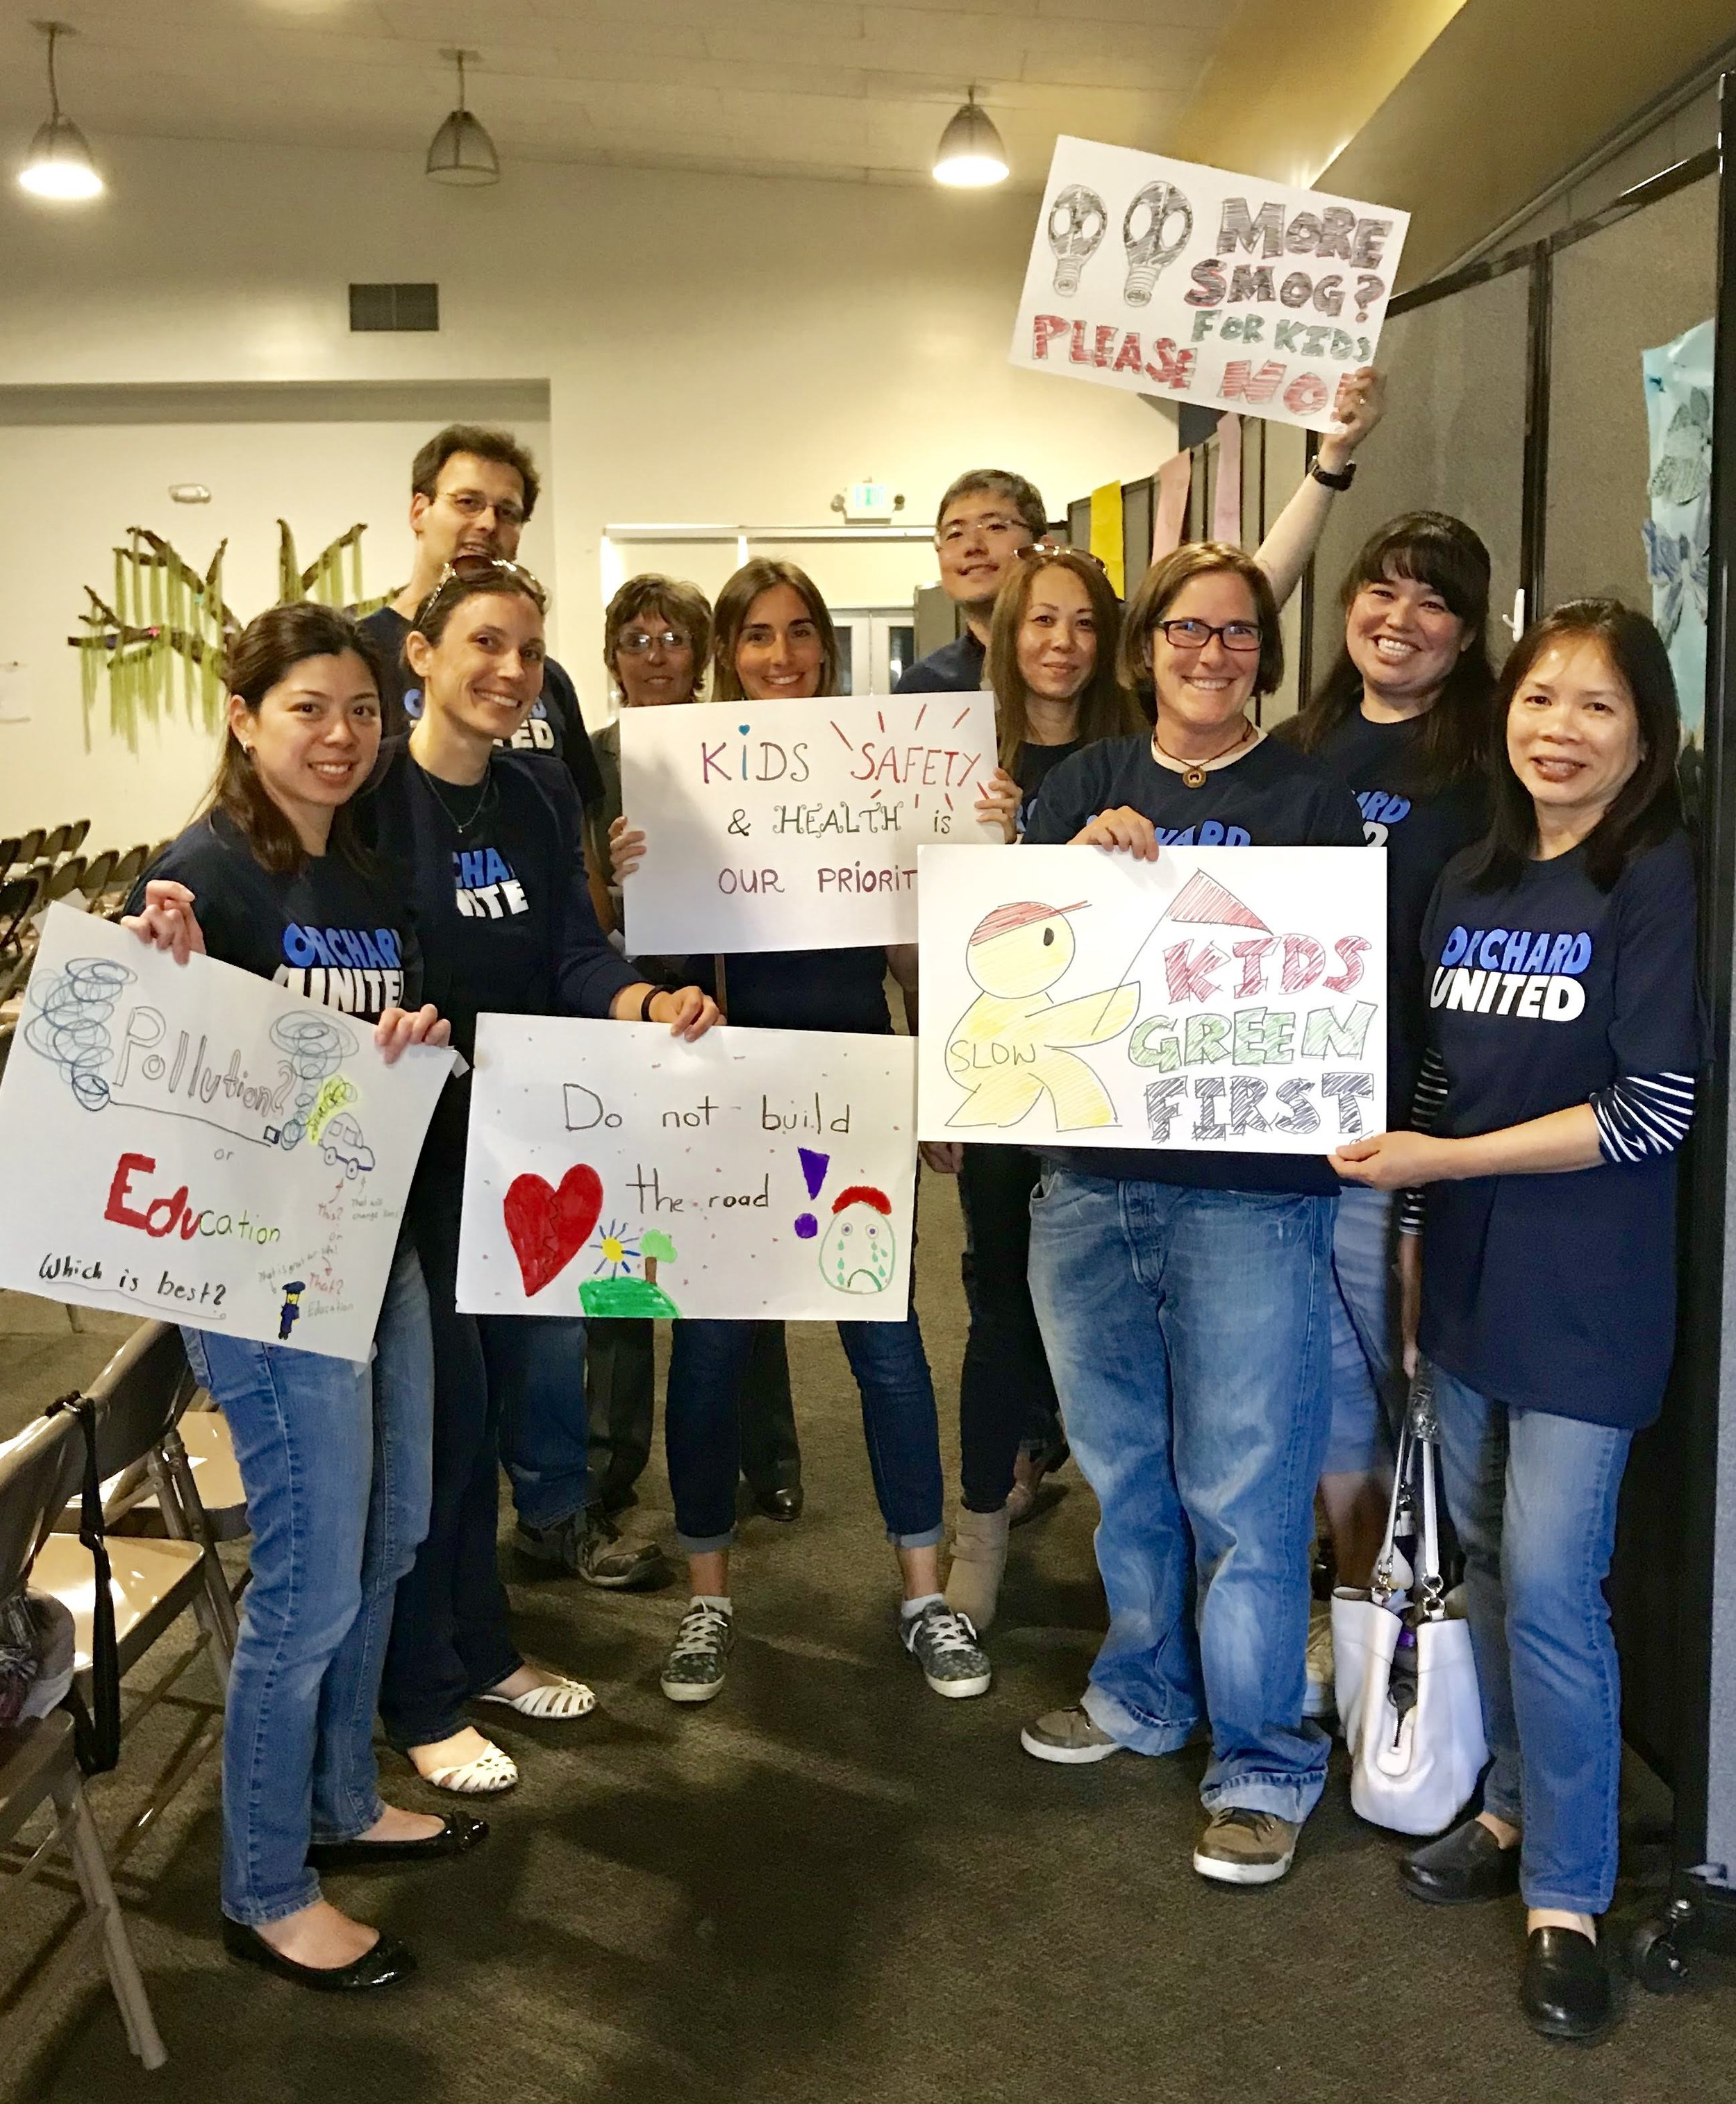 Parents and teachers united for a better solution